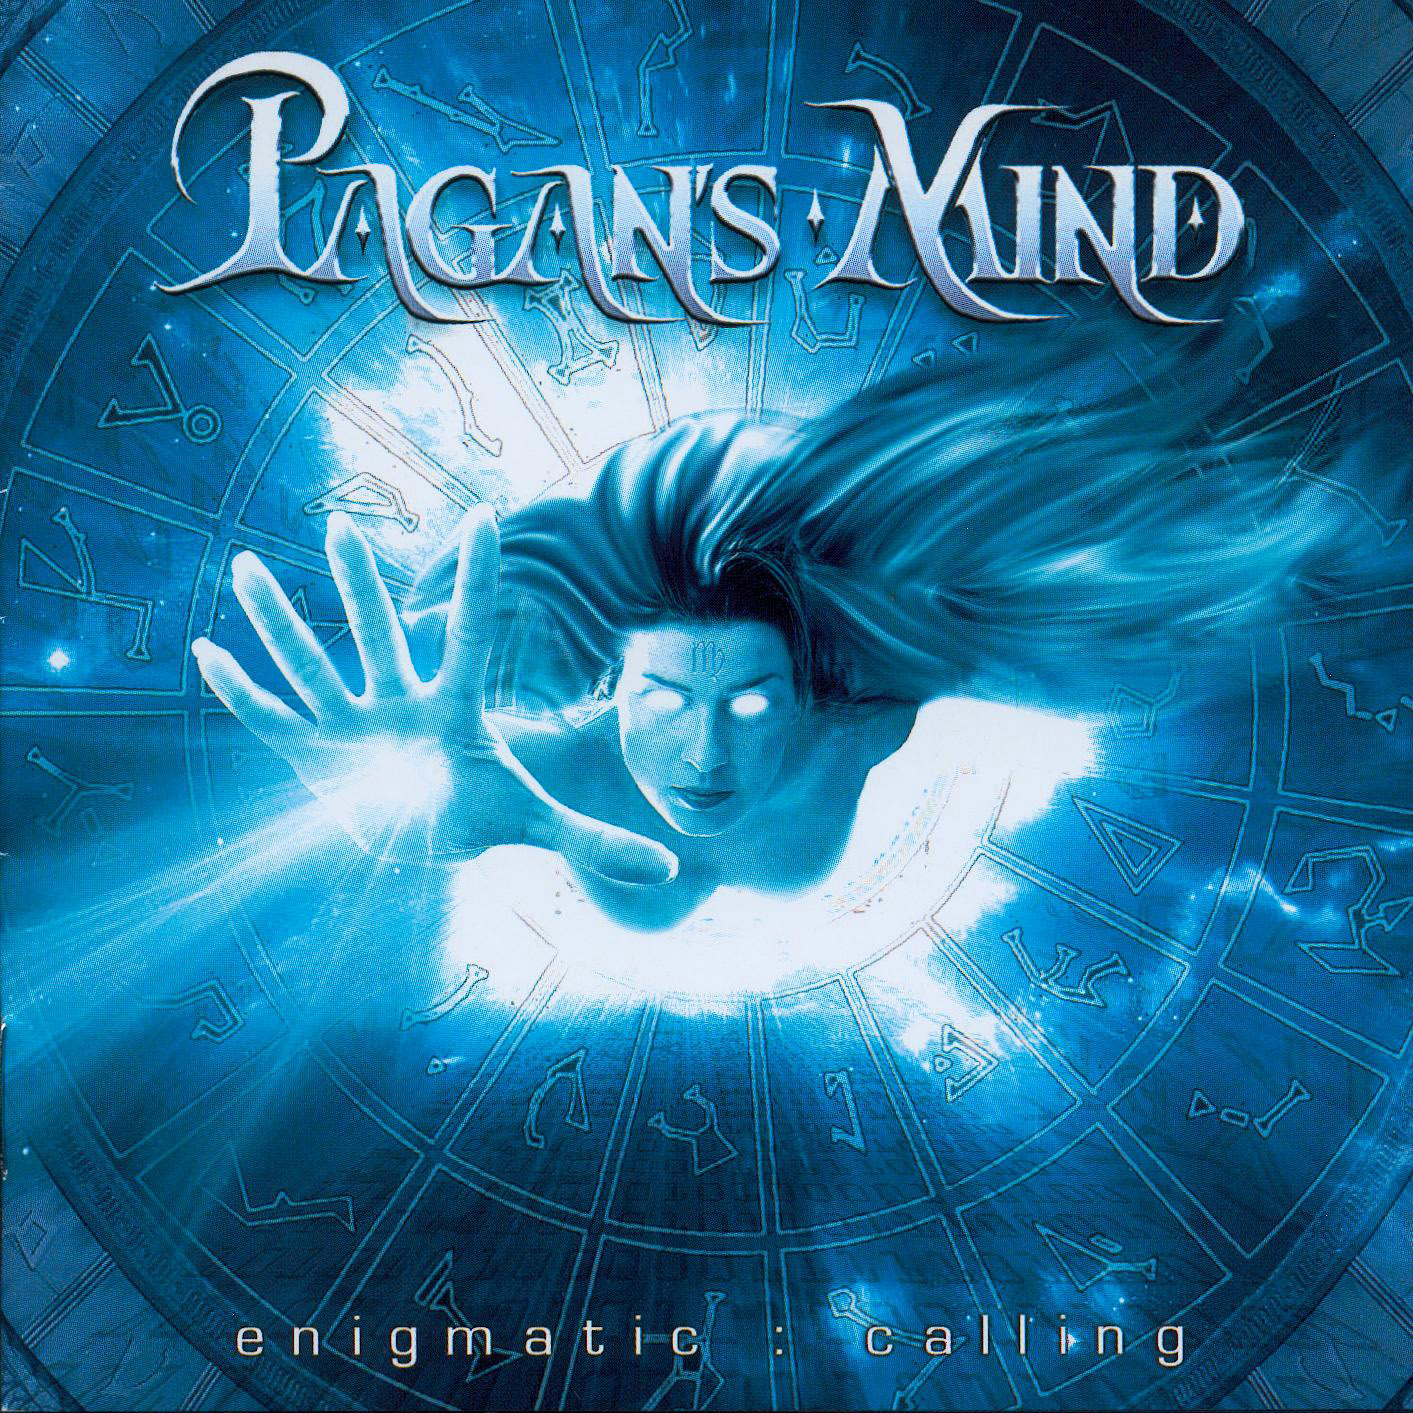 Pagans_Mind-Enigmatic_Calling-front square